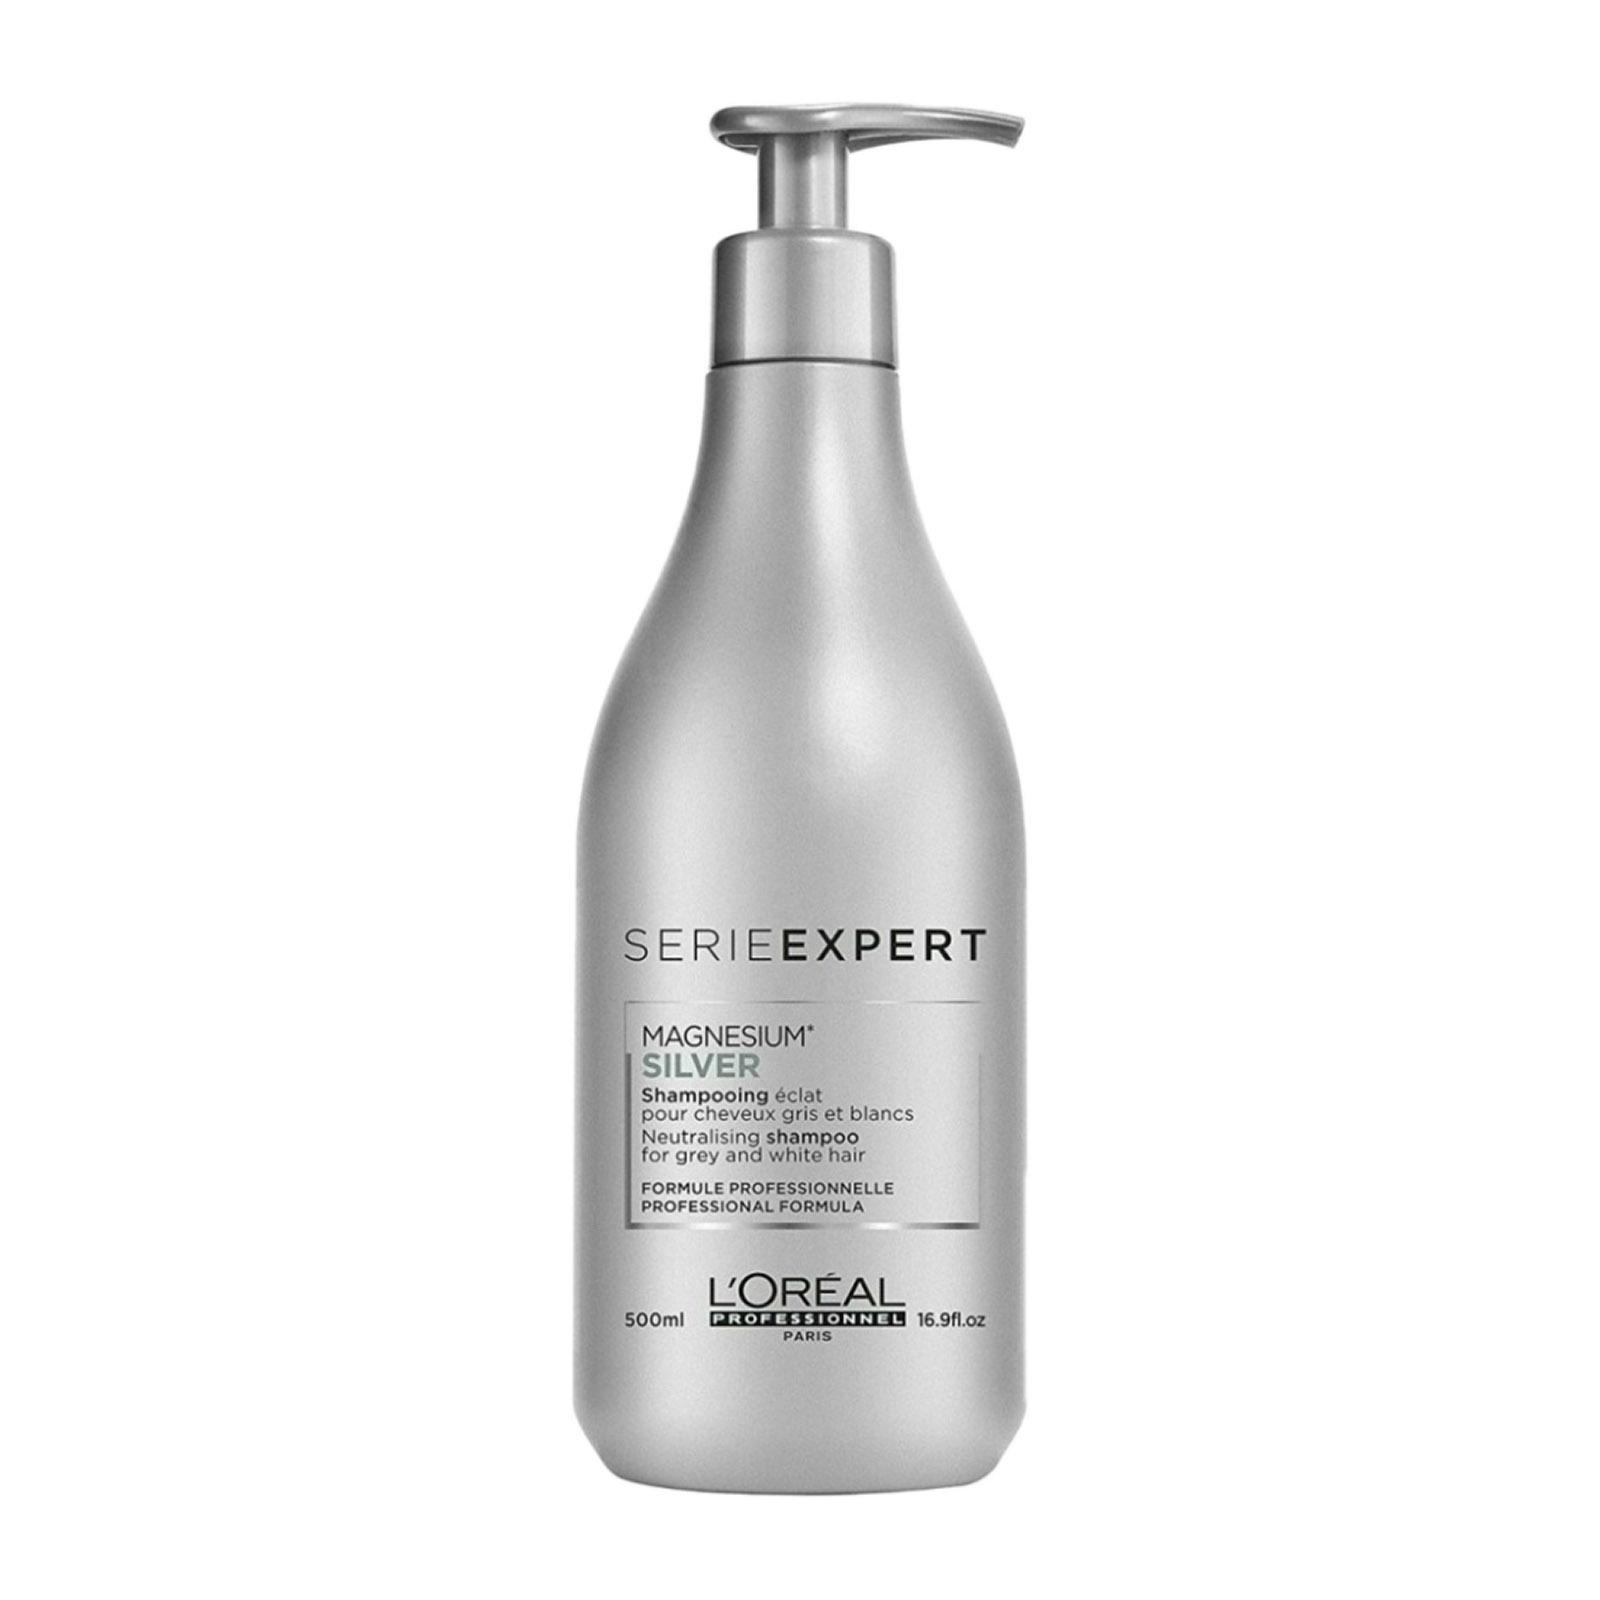 L'Oreal Serie Expert Magnesium Silver Shampoo - By Beauty Language